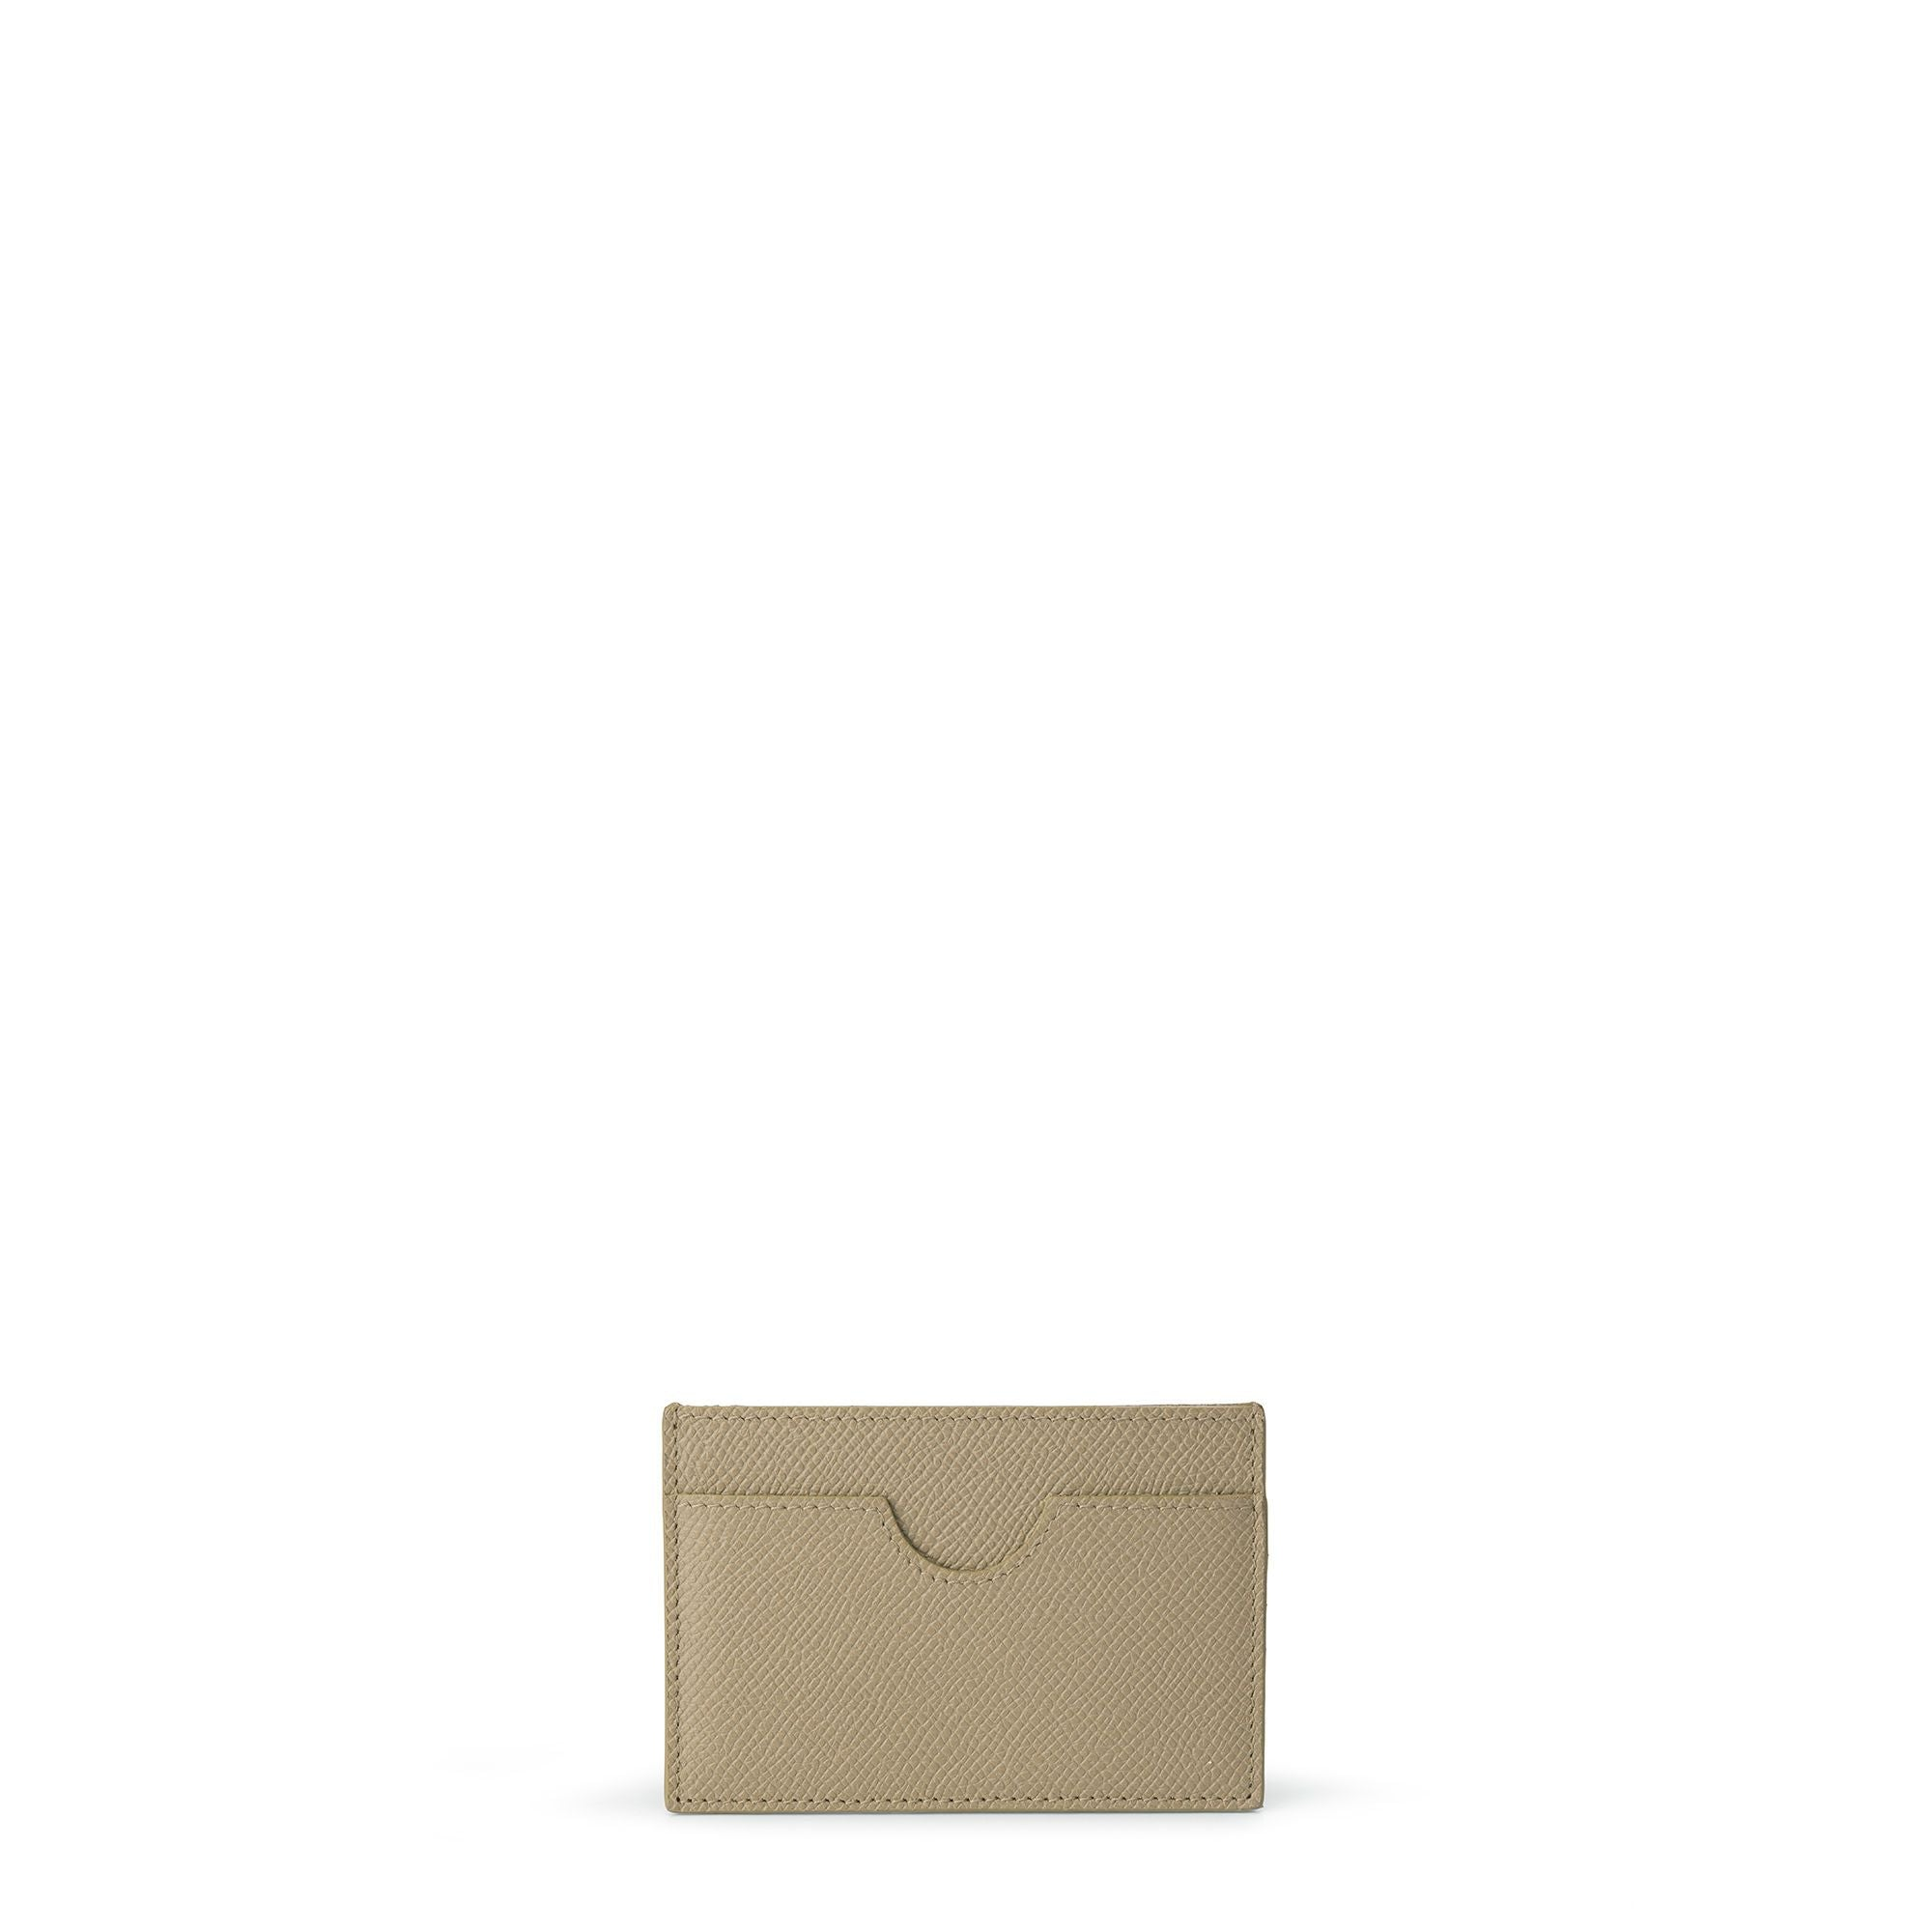 Card Case in Saffiano Leather - Putty Saffiano